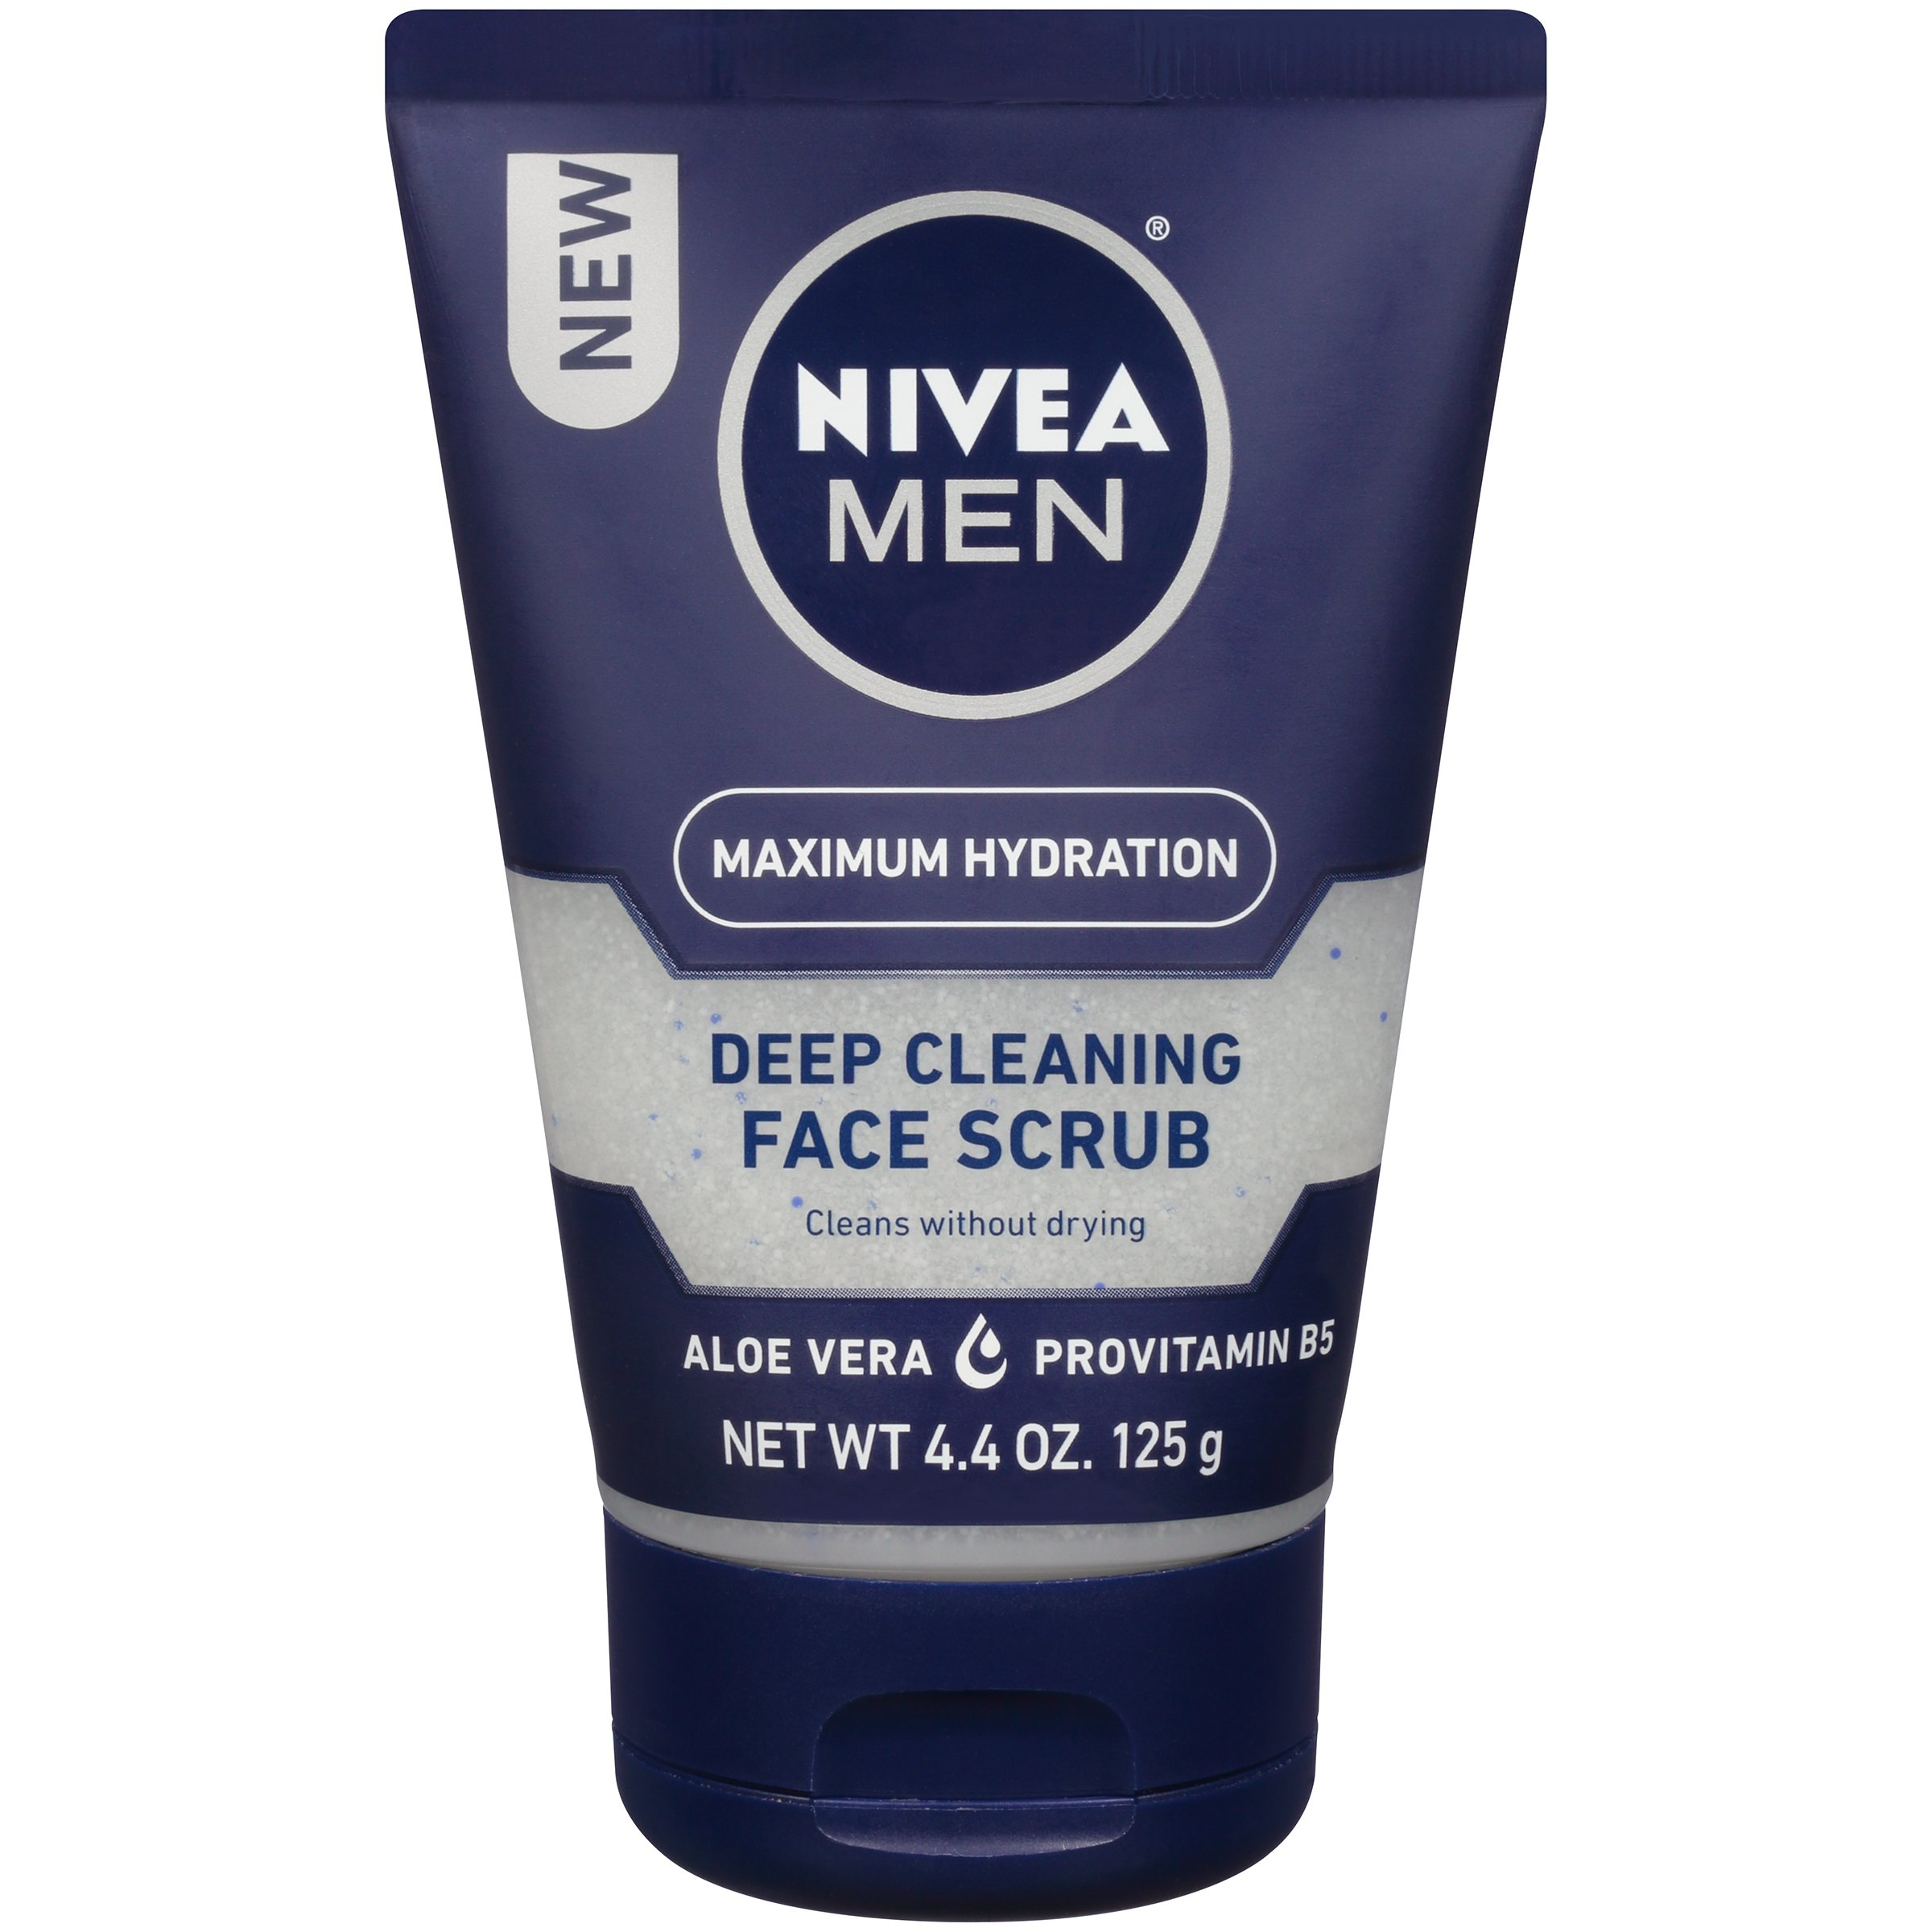 NIVEA Men Maximum  Hydration Deep Cleaning Face Scrub - Cleans without drying, contains Pro-vitamins - 4.4 oz. Tube (Pack of 3) by Nivea Men